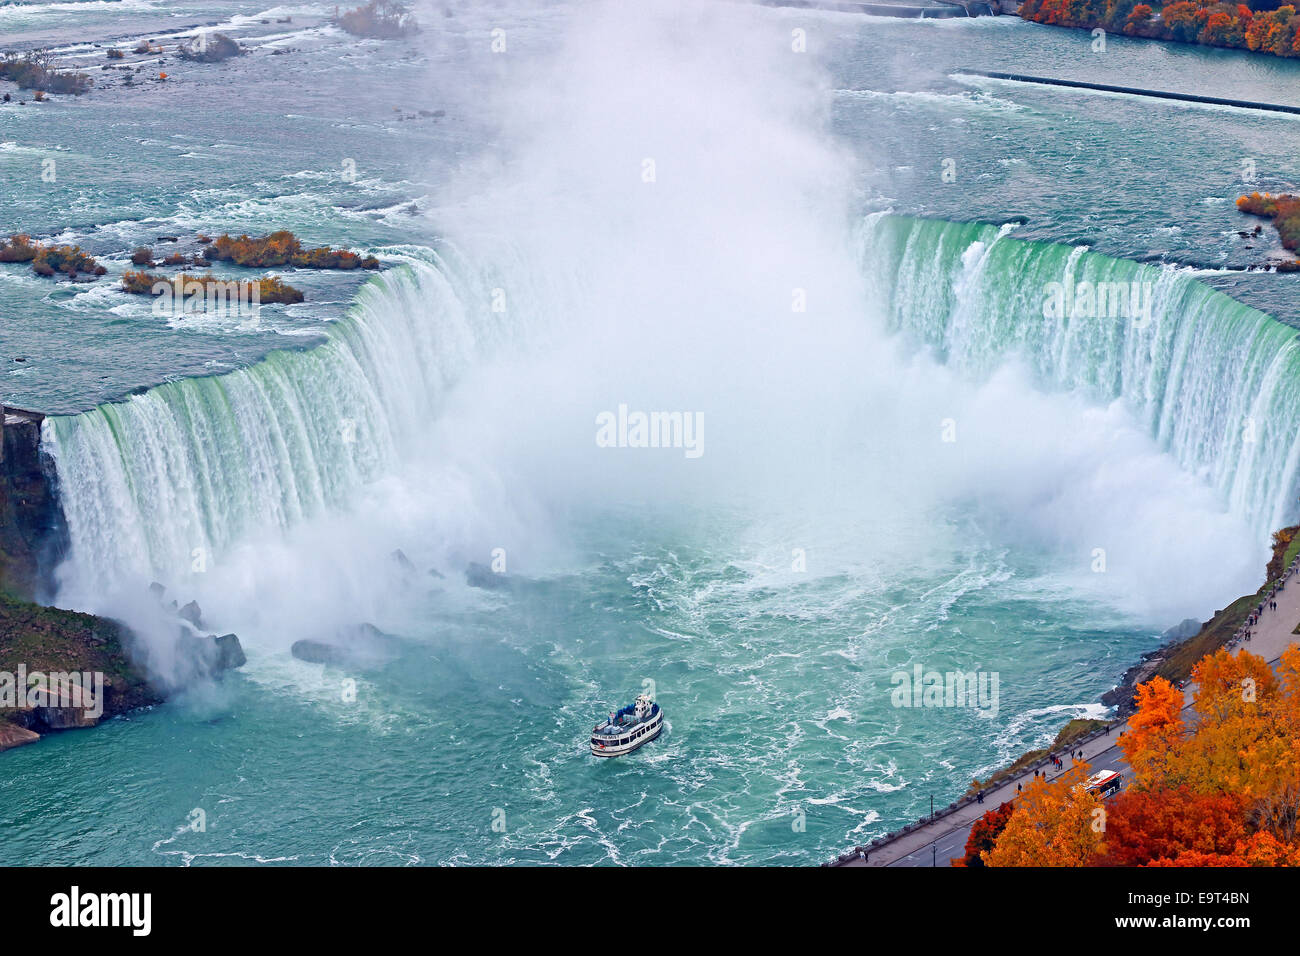 Niagara Falls with tour boat Maid of The Mist in Niagara River and WEGO Bus on Niagara Parkway. - Stock Image